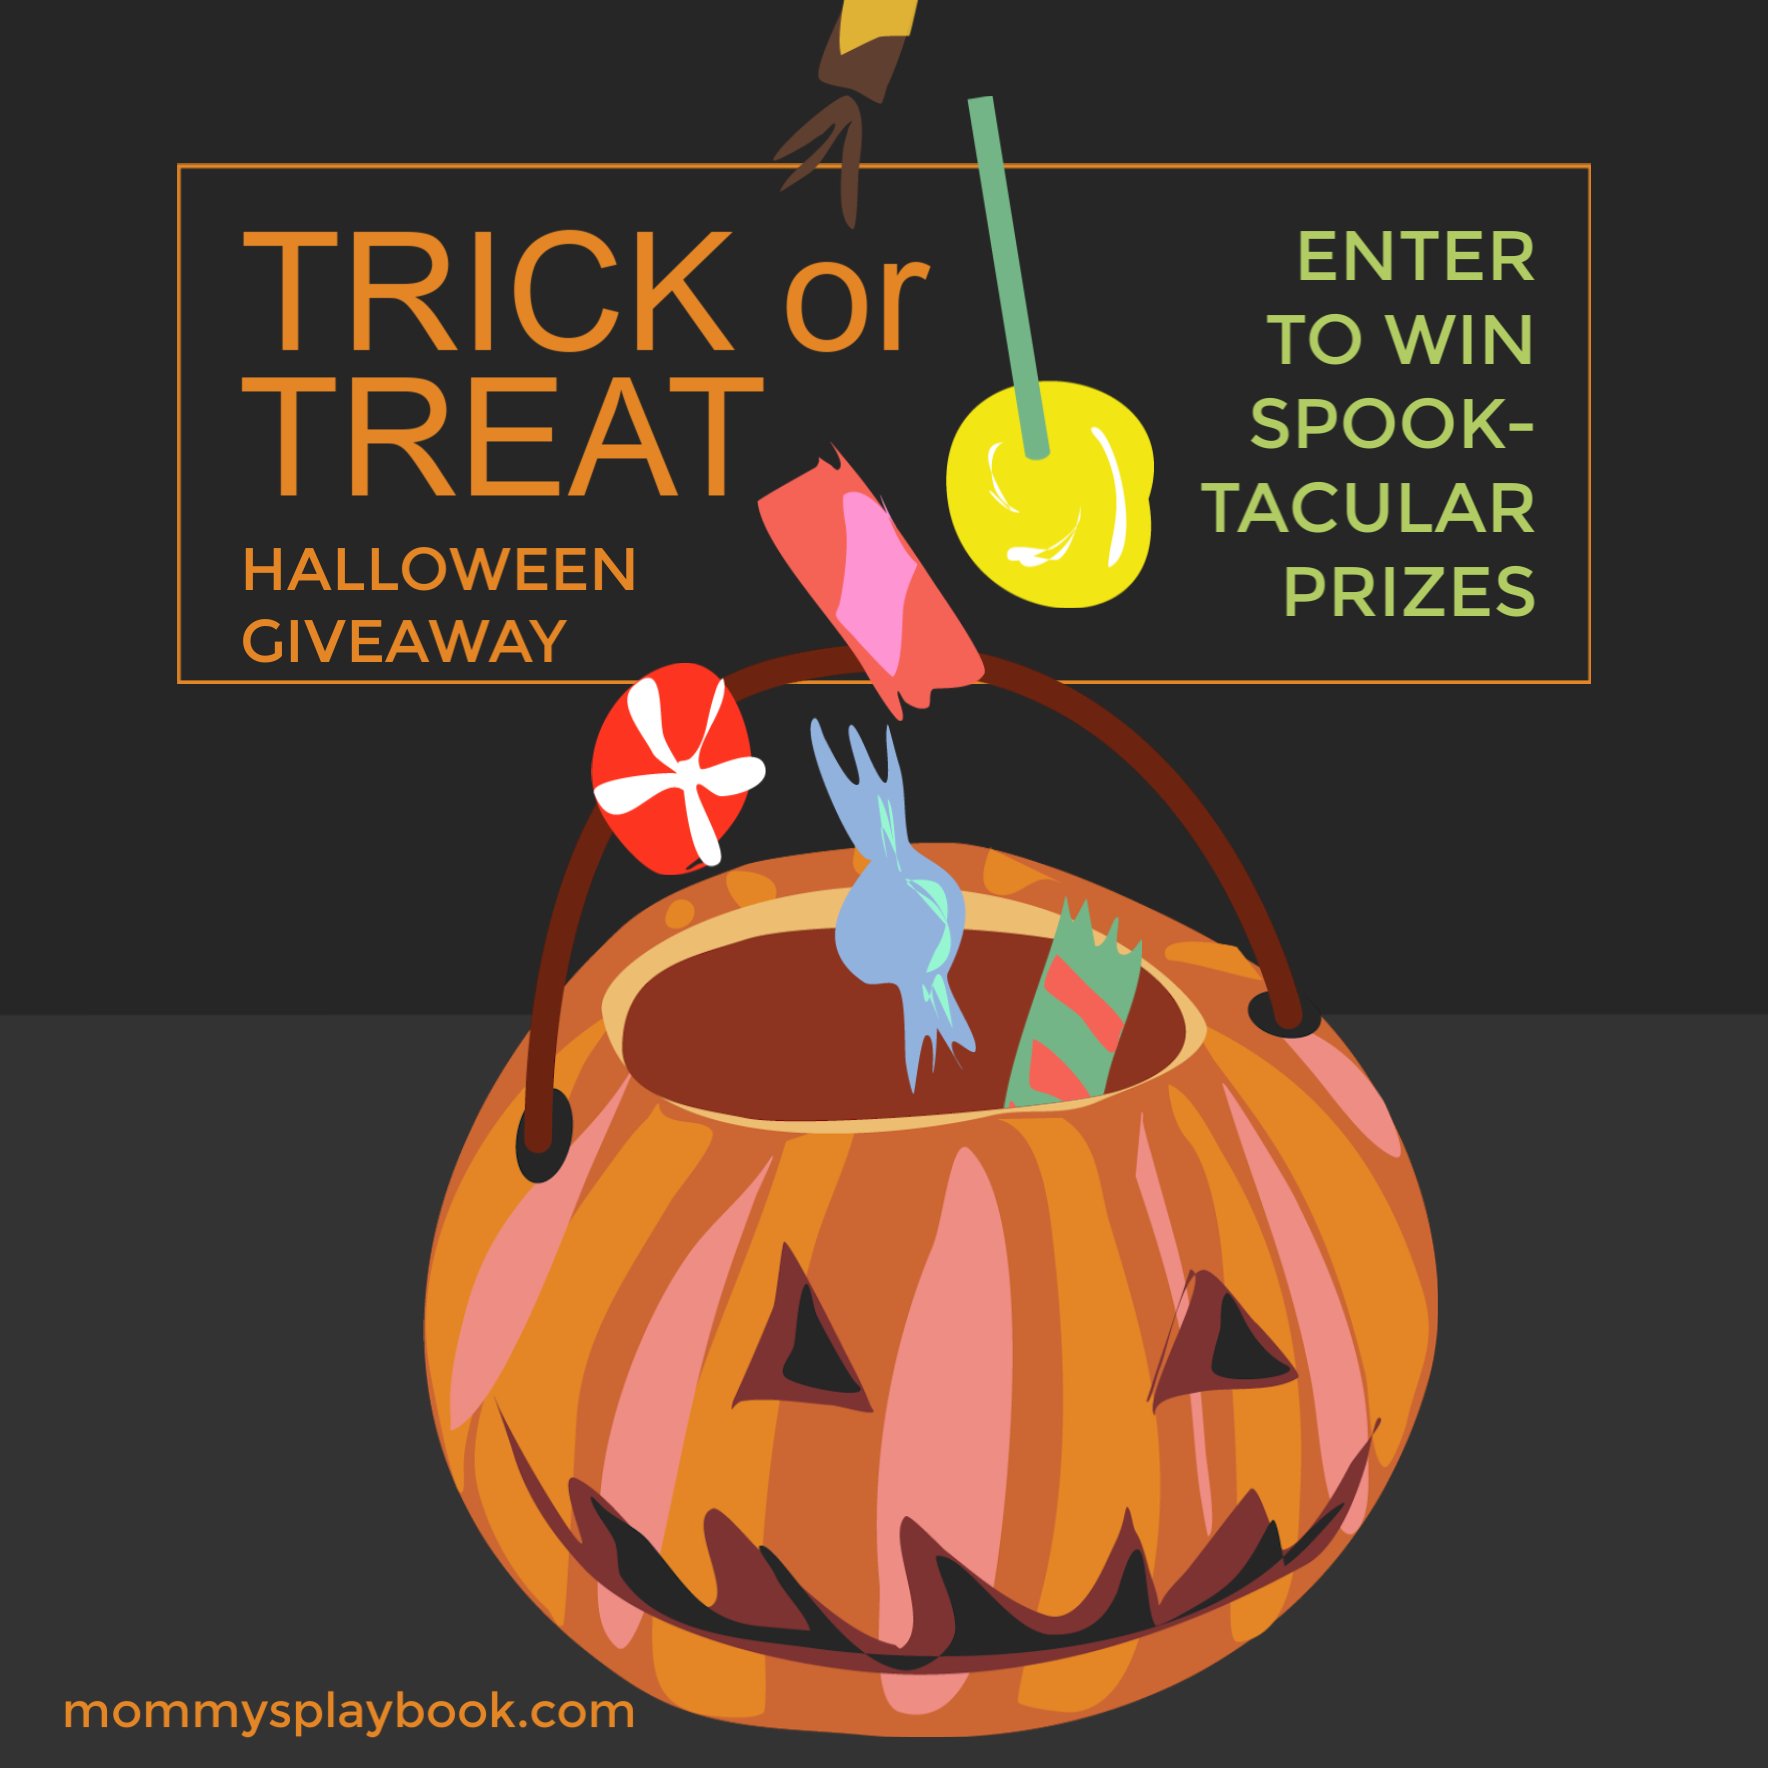 #Win Trick or Treat prizes